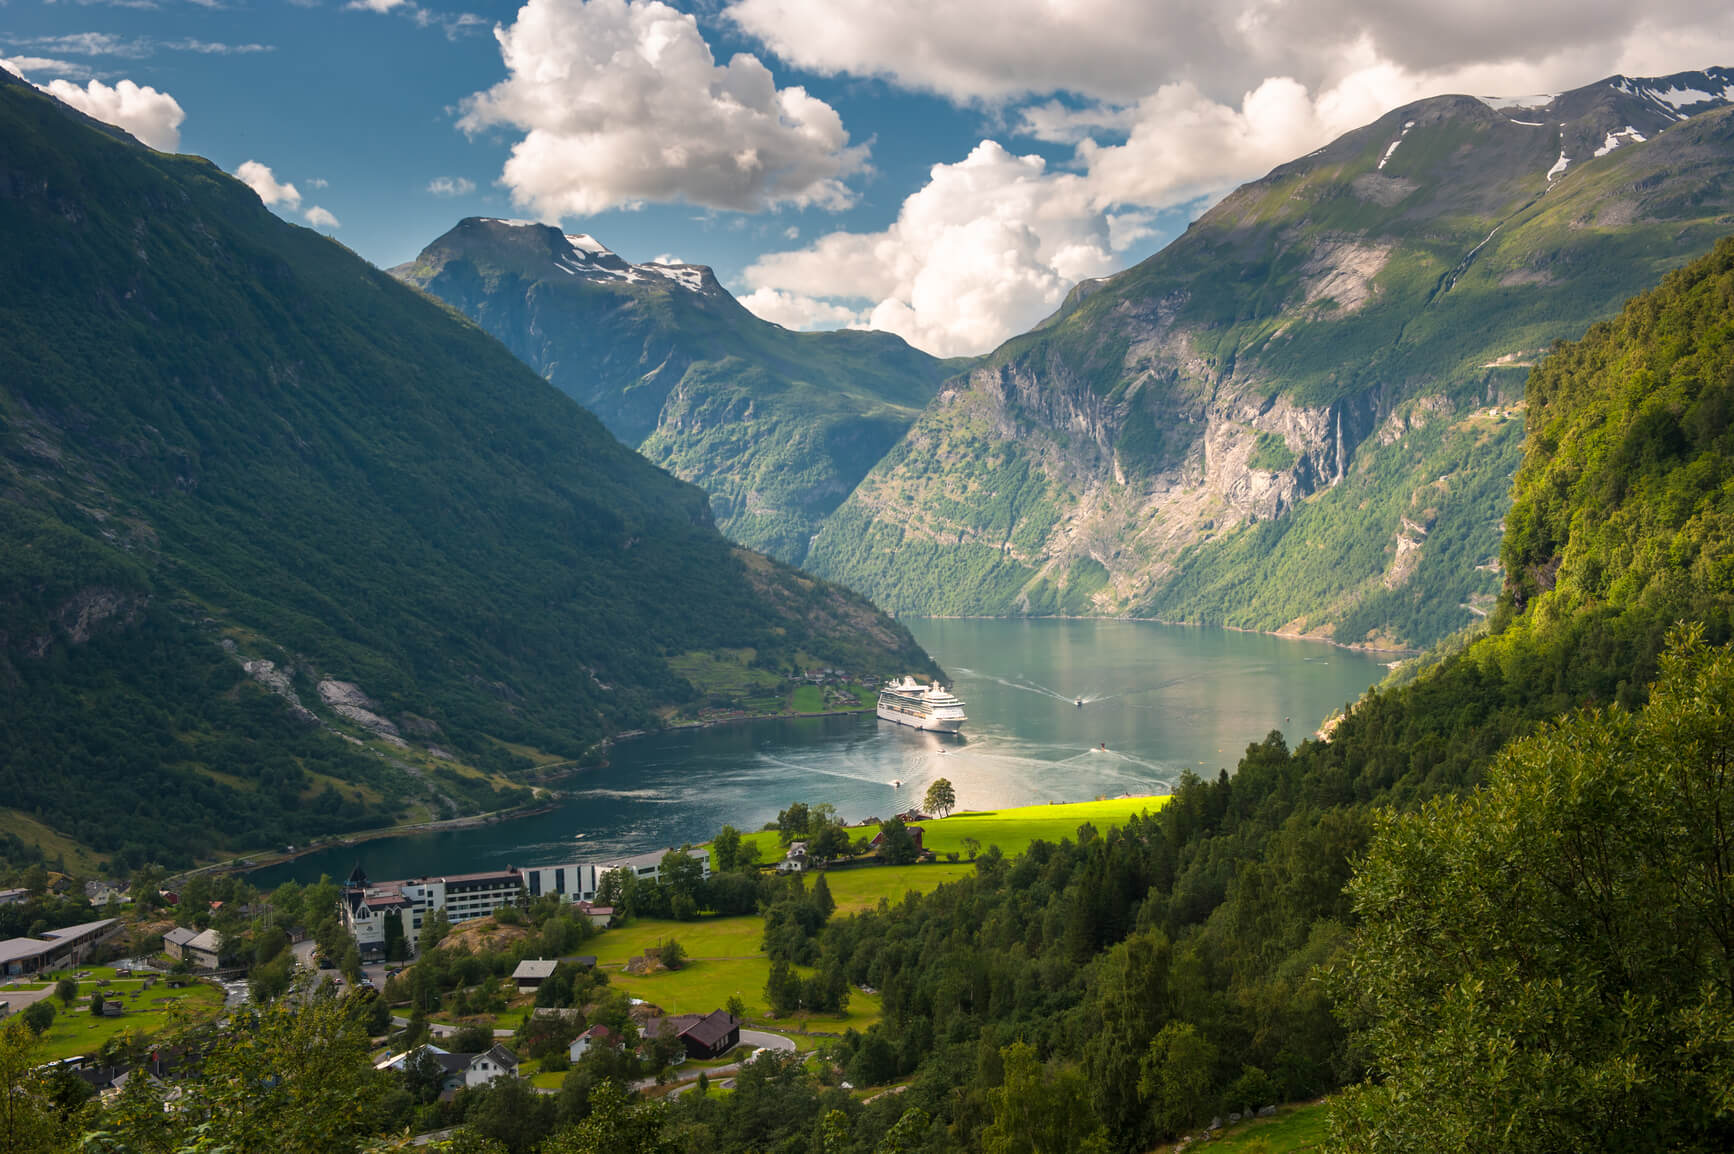 Expired Los Angeles To Oslo Norway For Only 416 Roundtrip